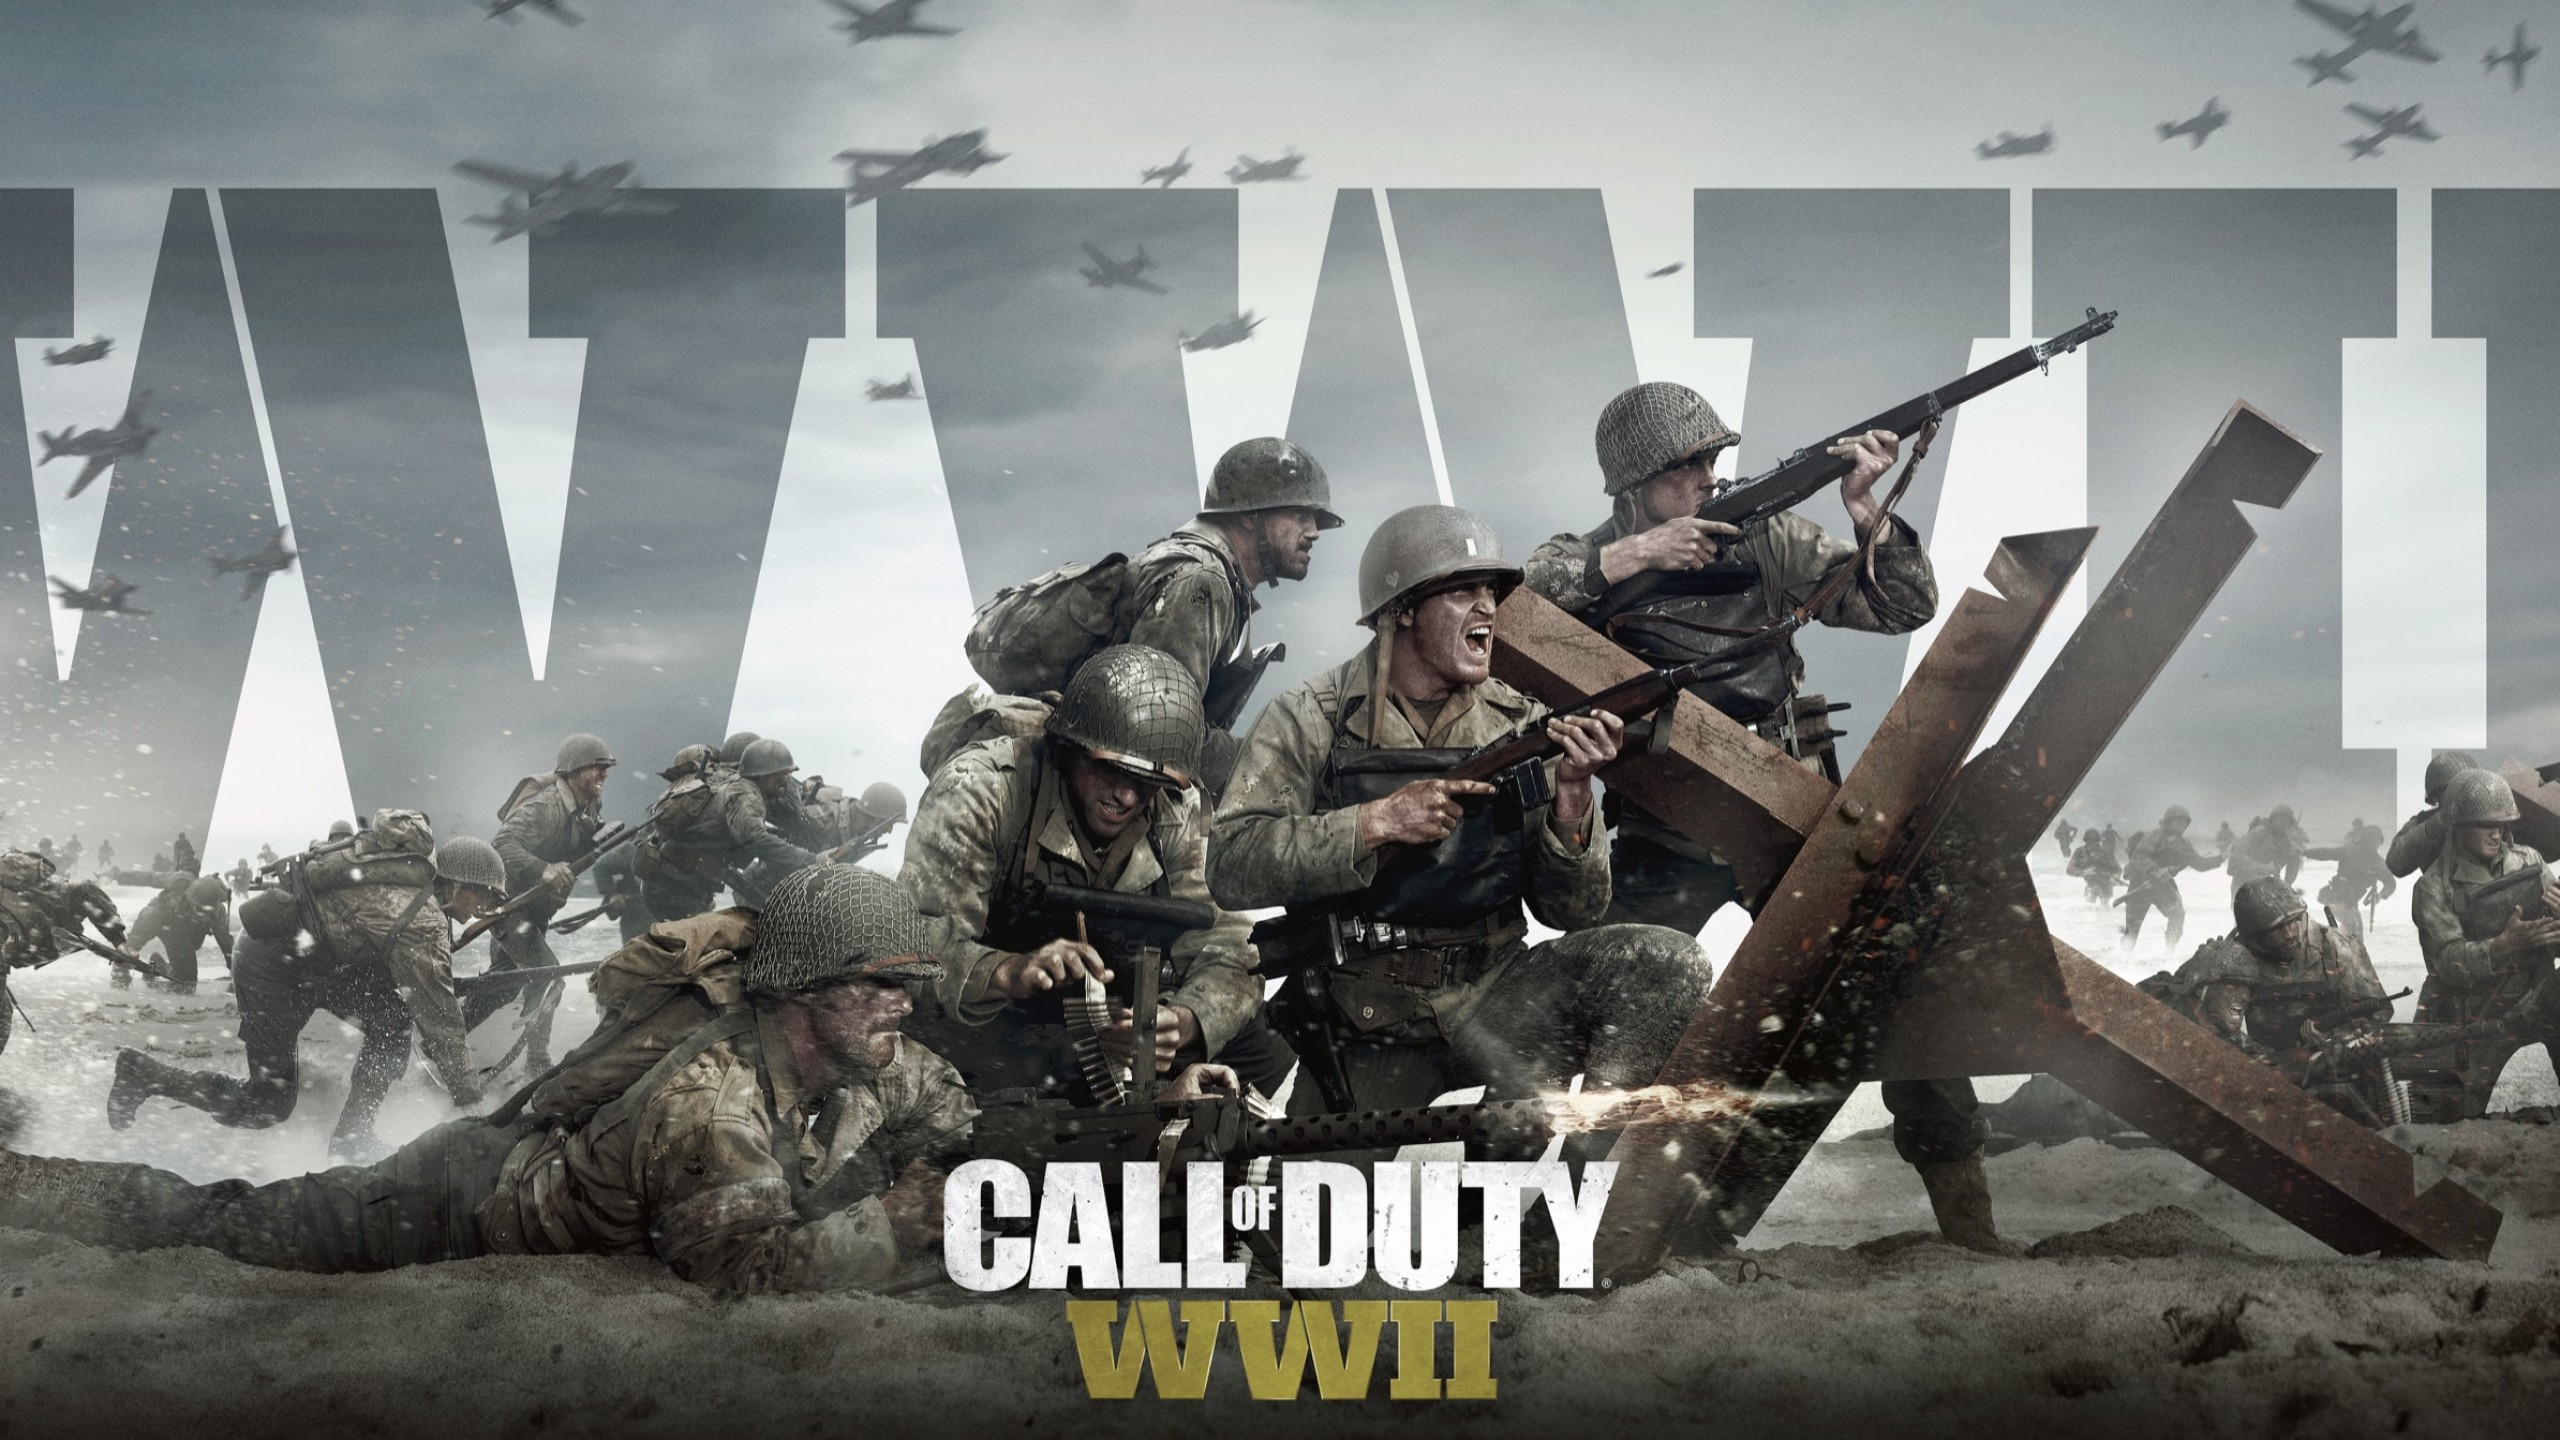 call-of-duty-wwii-2560x1440-hd-7346.jpg